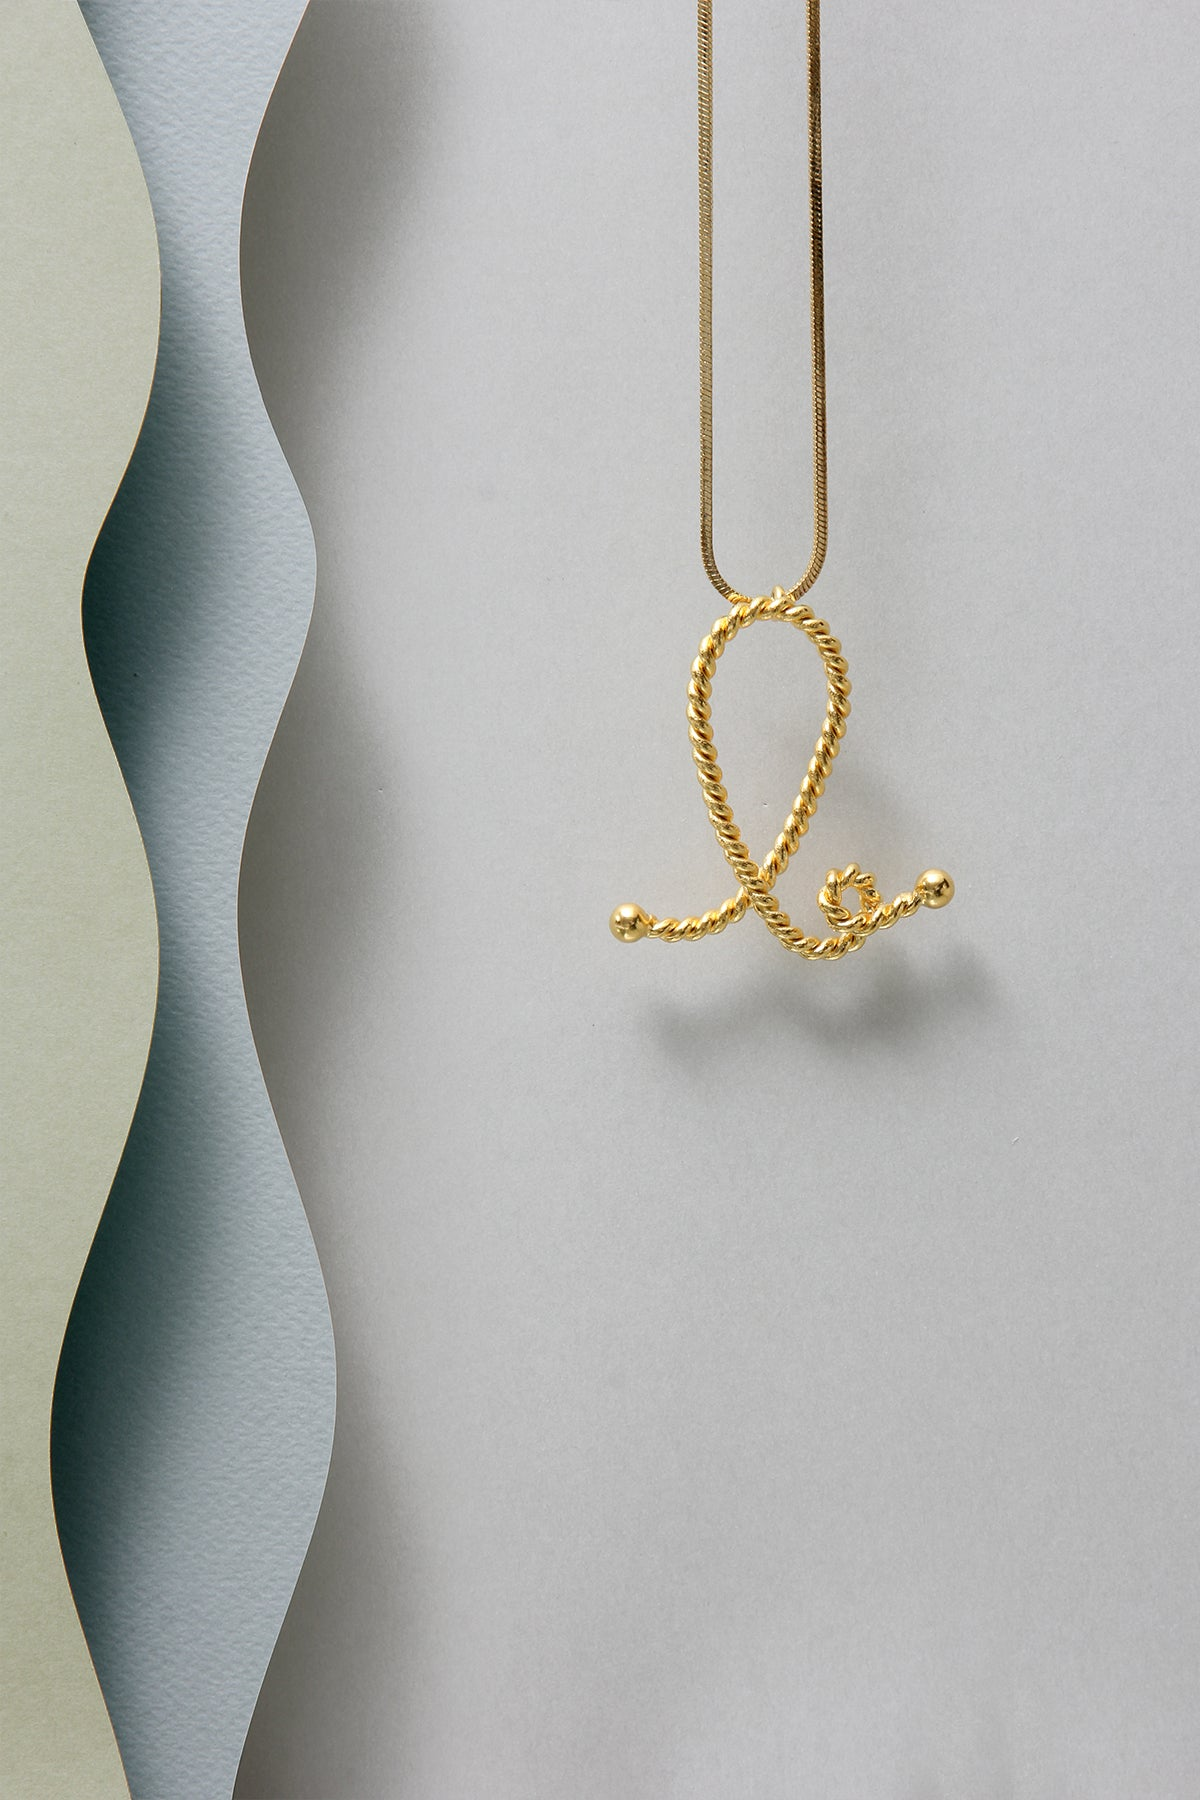 THE INITIAL B NECKLACE